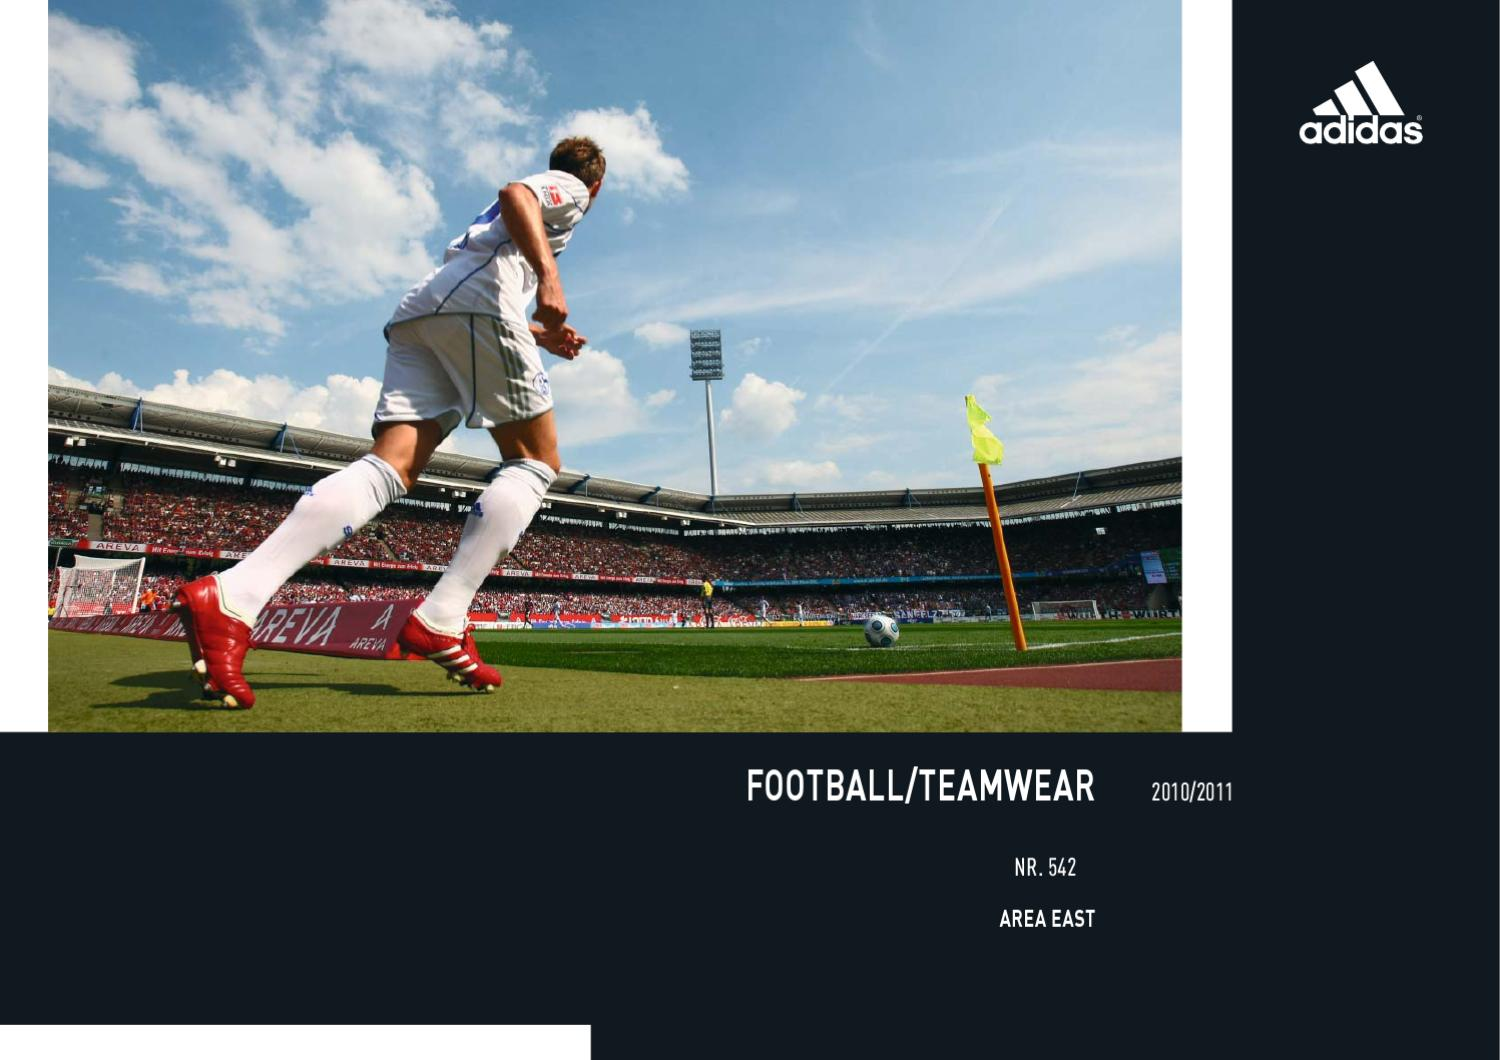 Adidas Teamwear cataloque 1011 by Michal Andel issuu